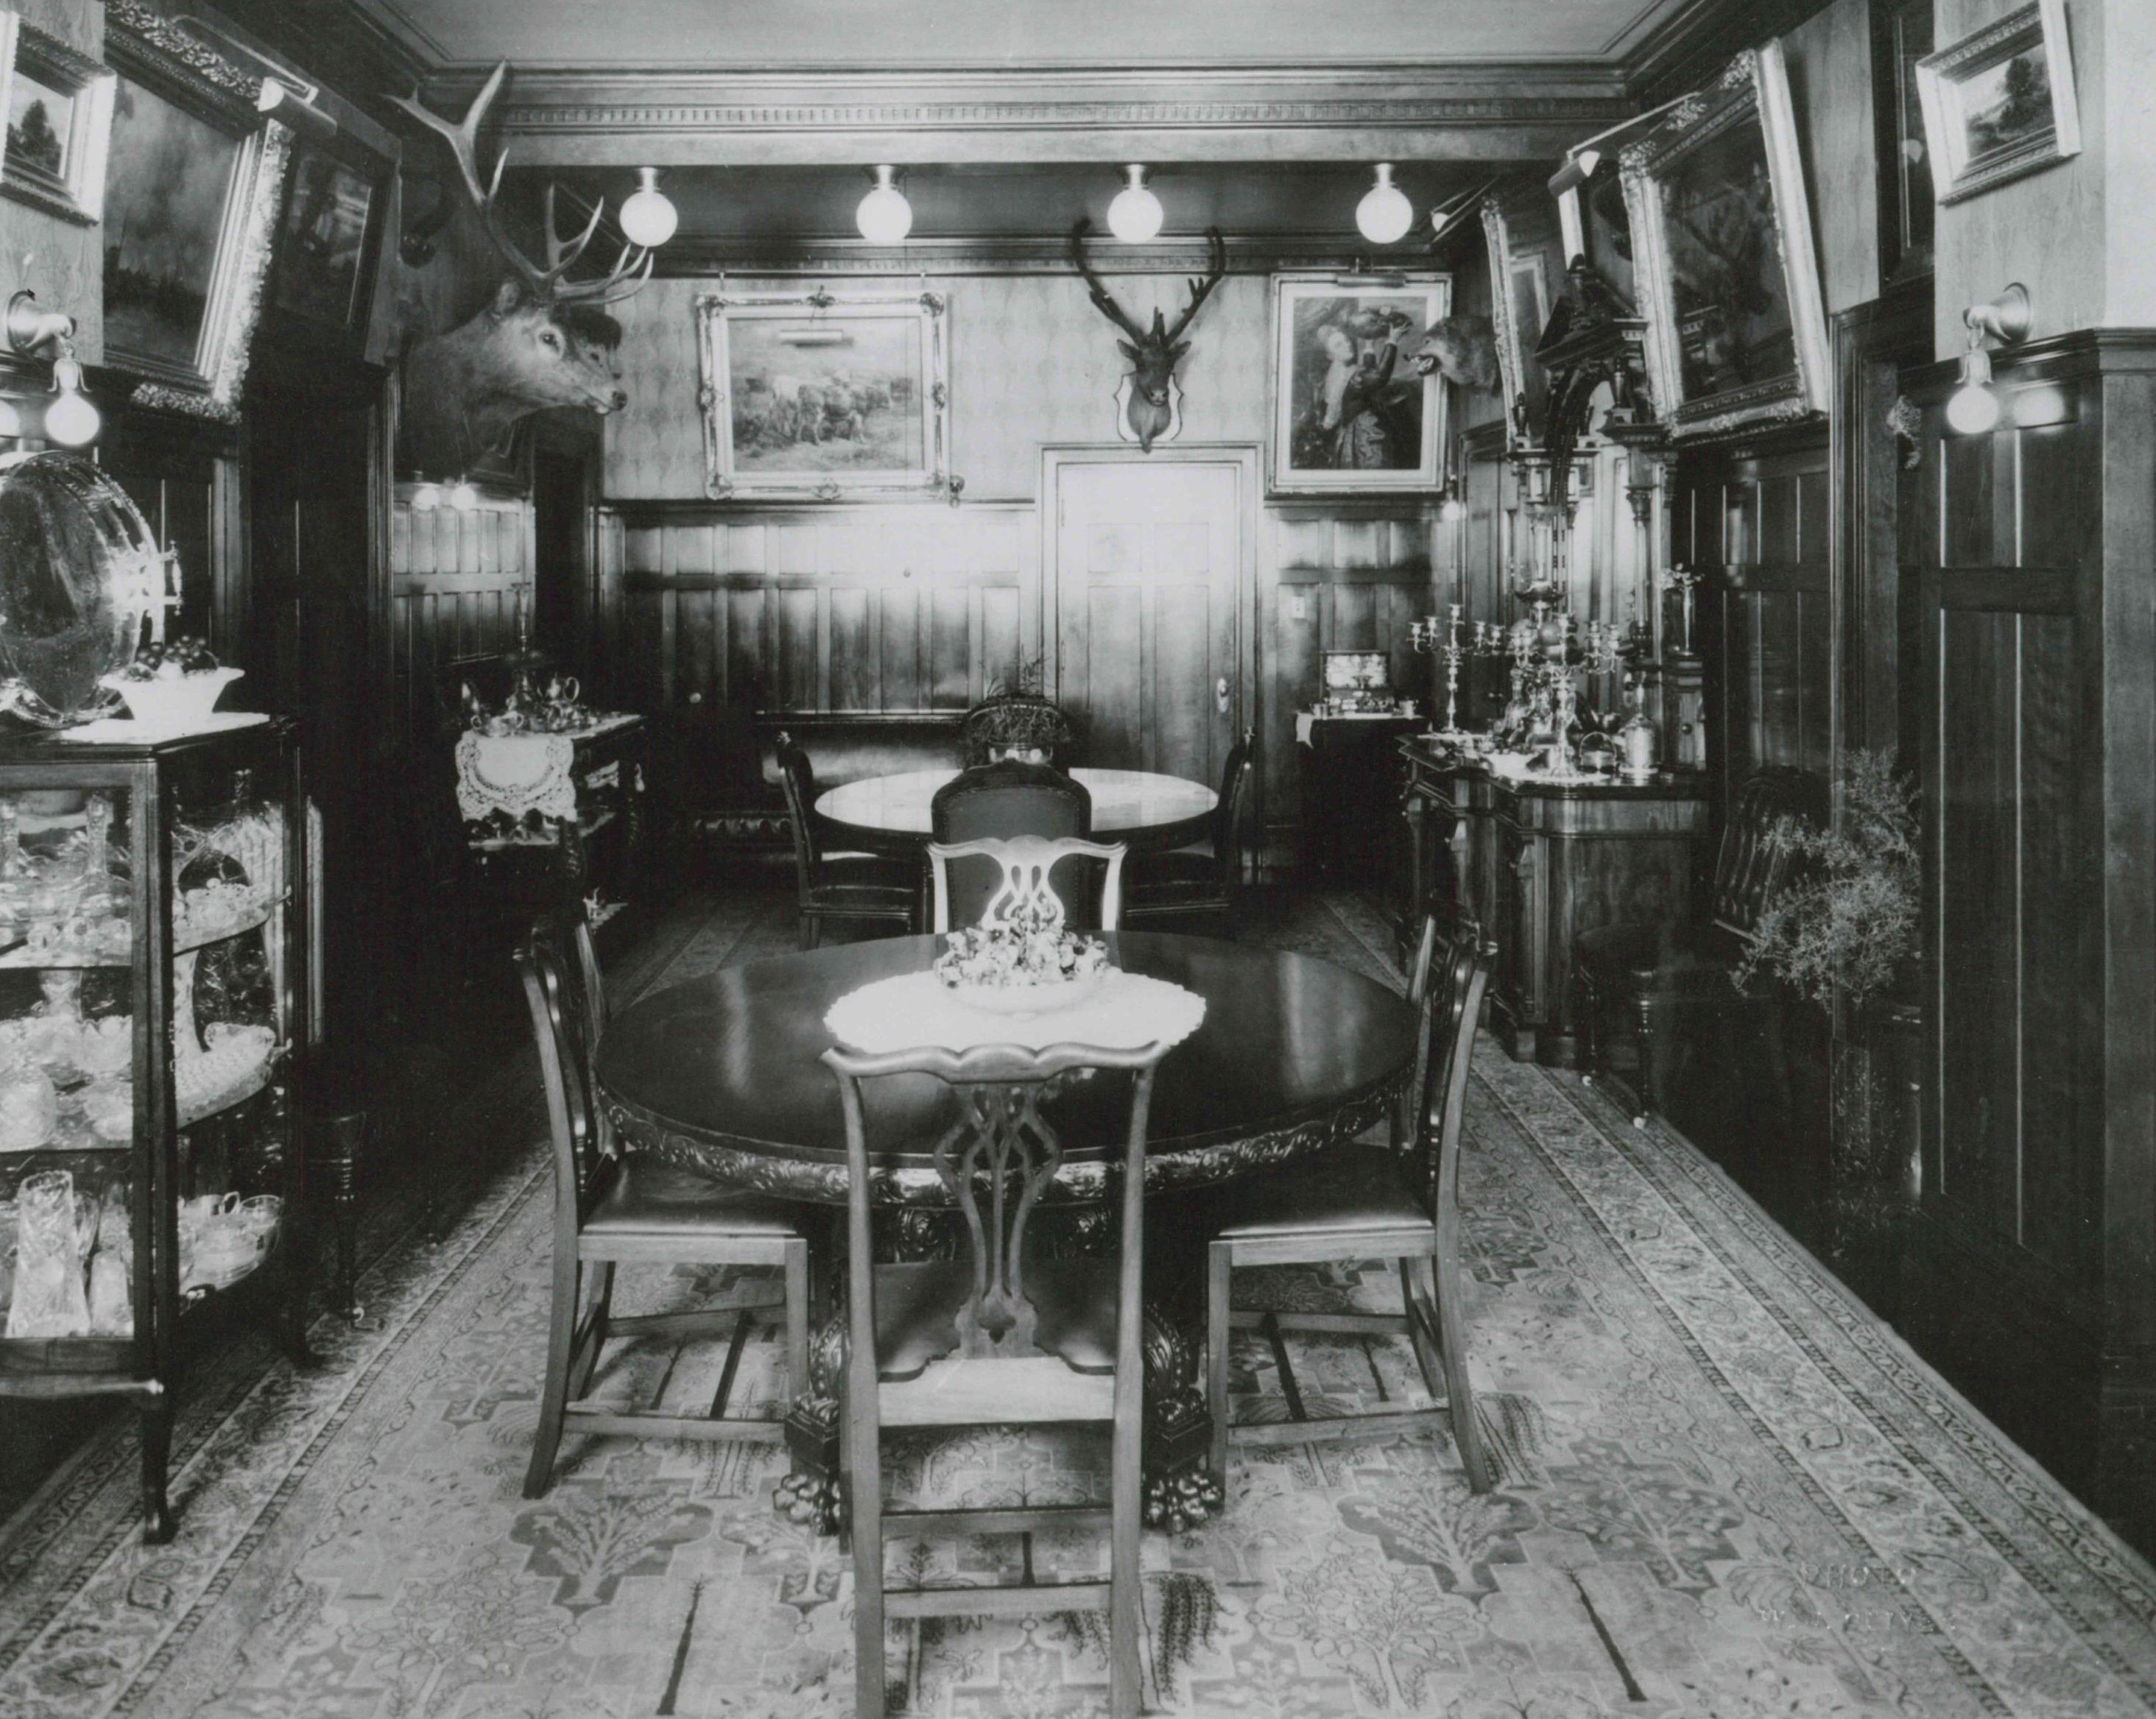 Image 4, Dining Room c. 1920's